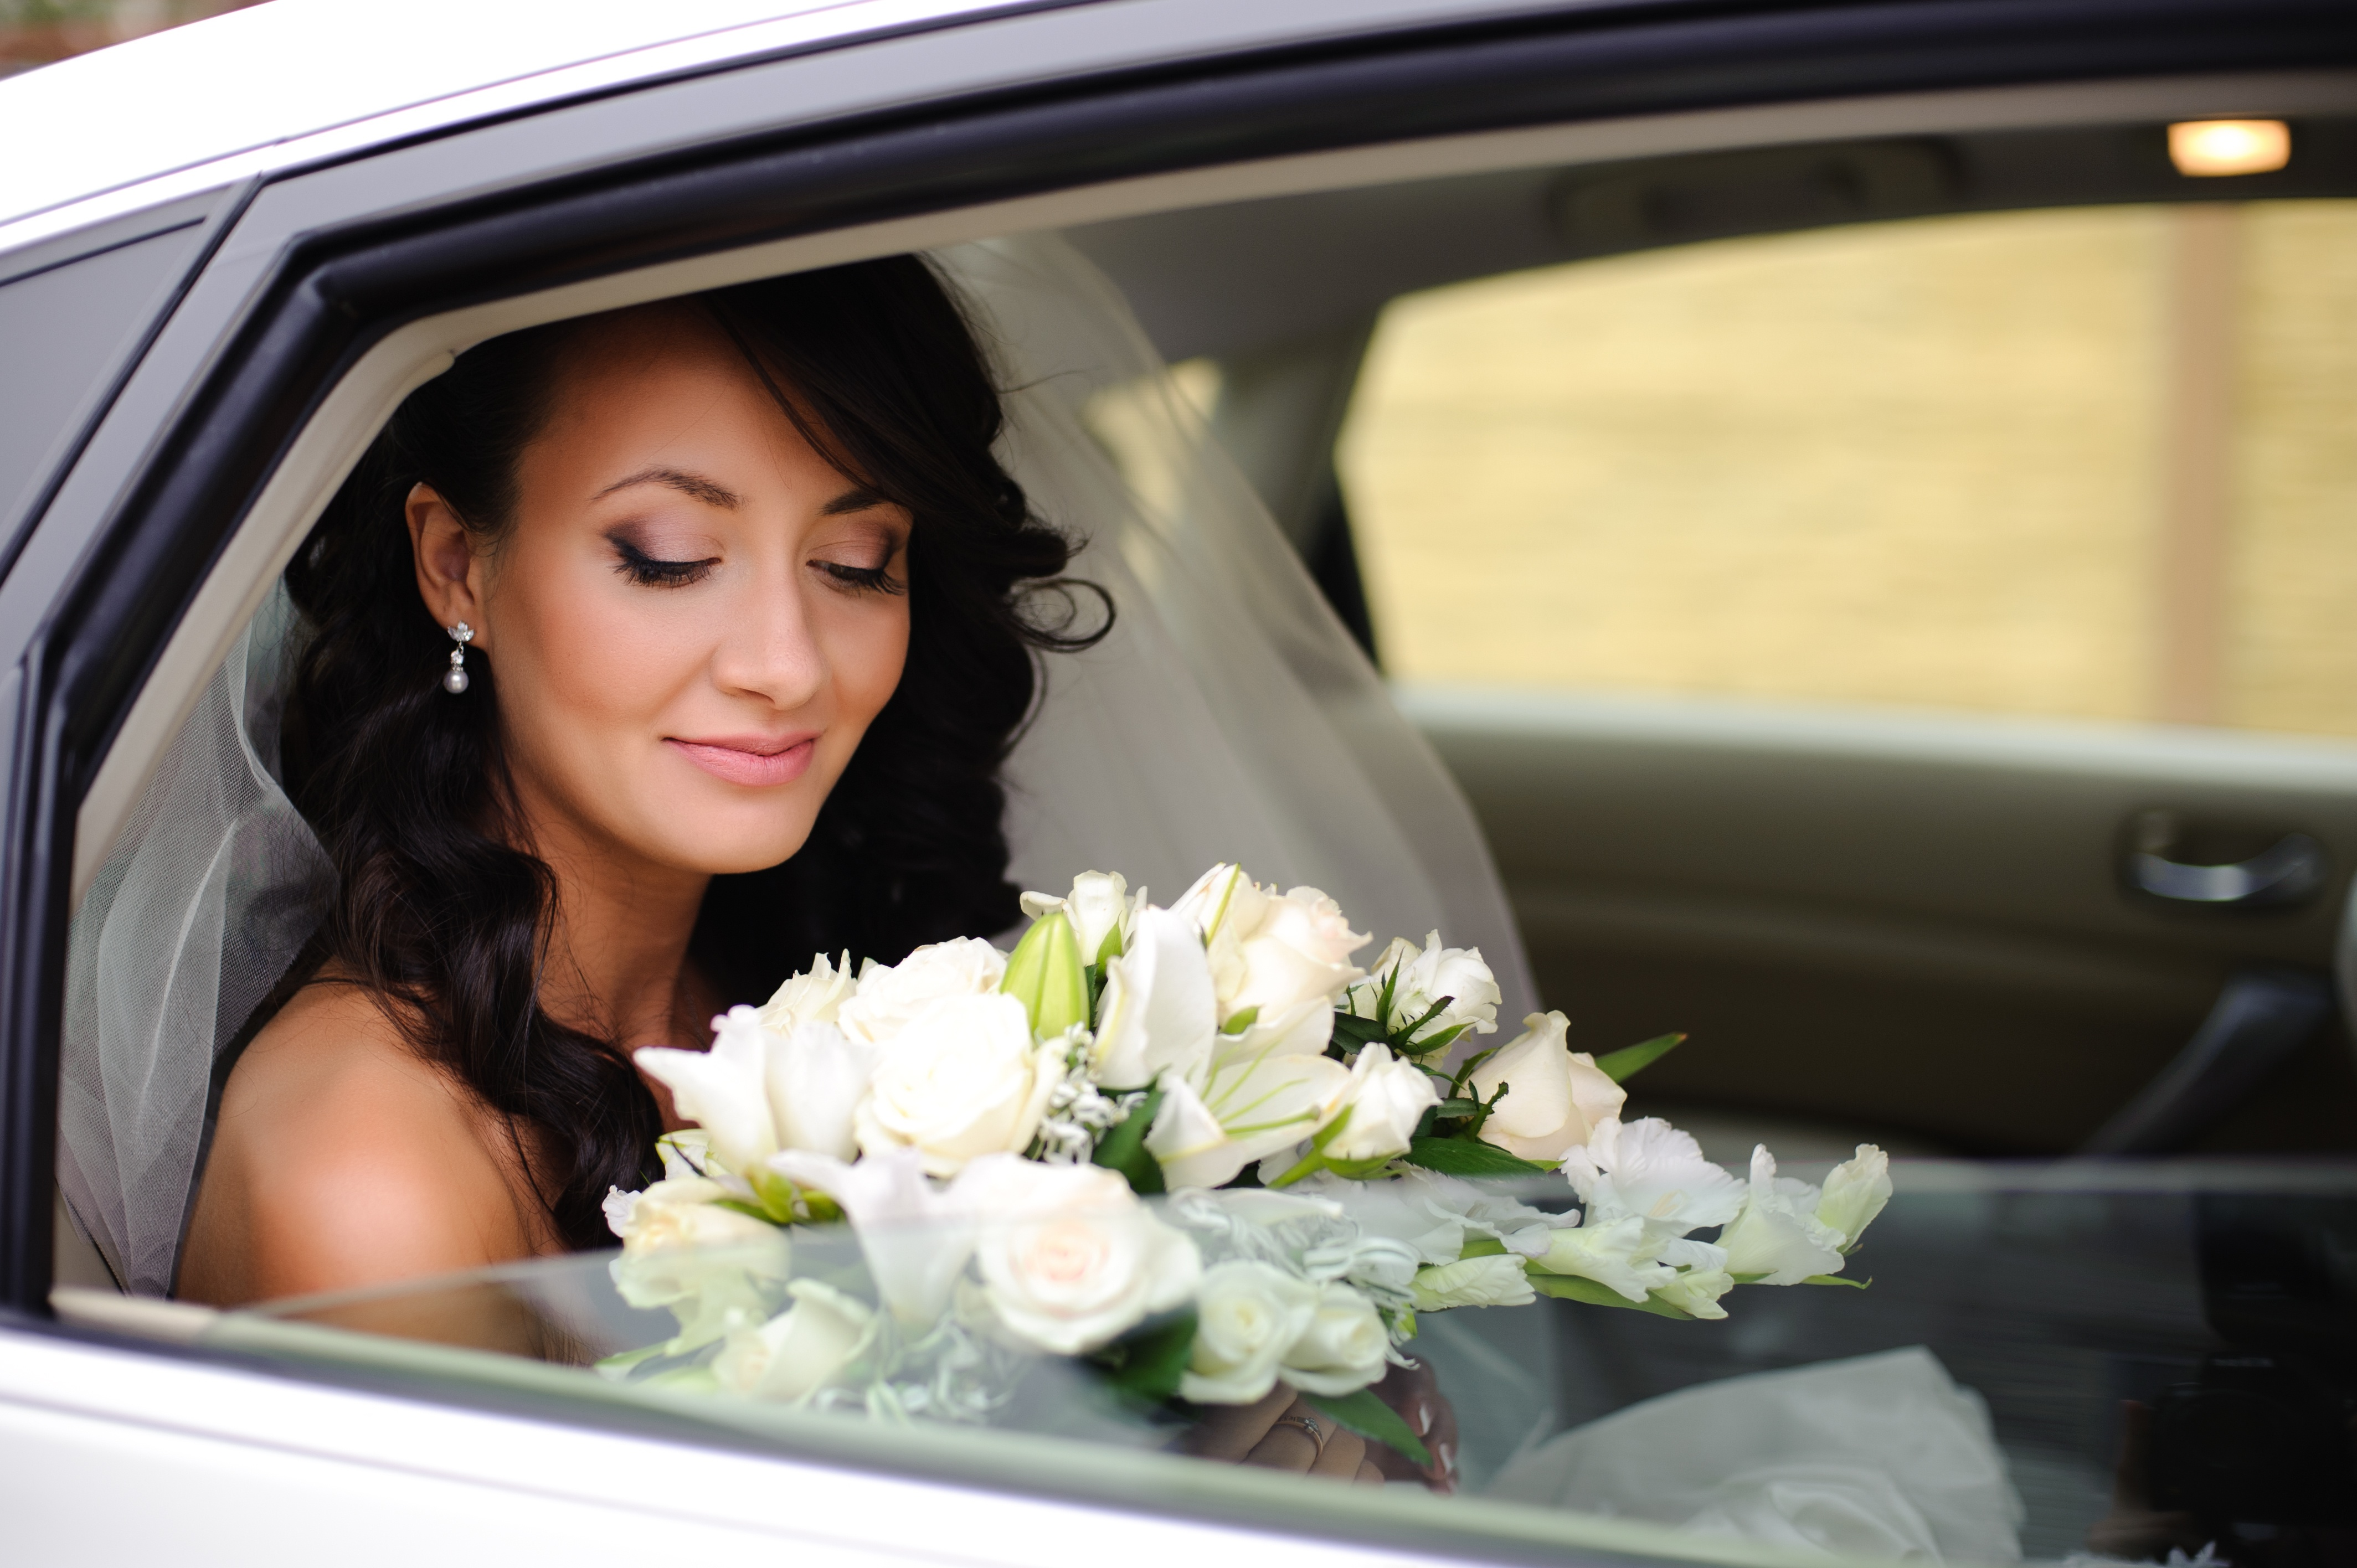 Getting married? Book Corporate Sedan Service for your limousine!